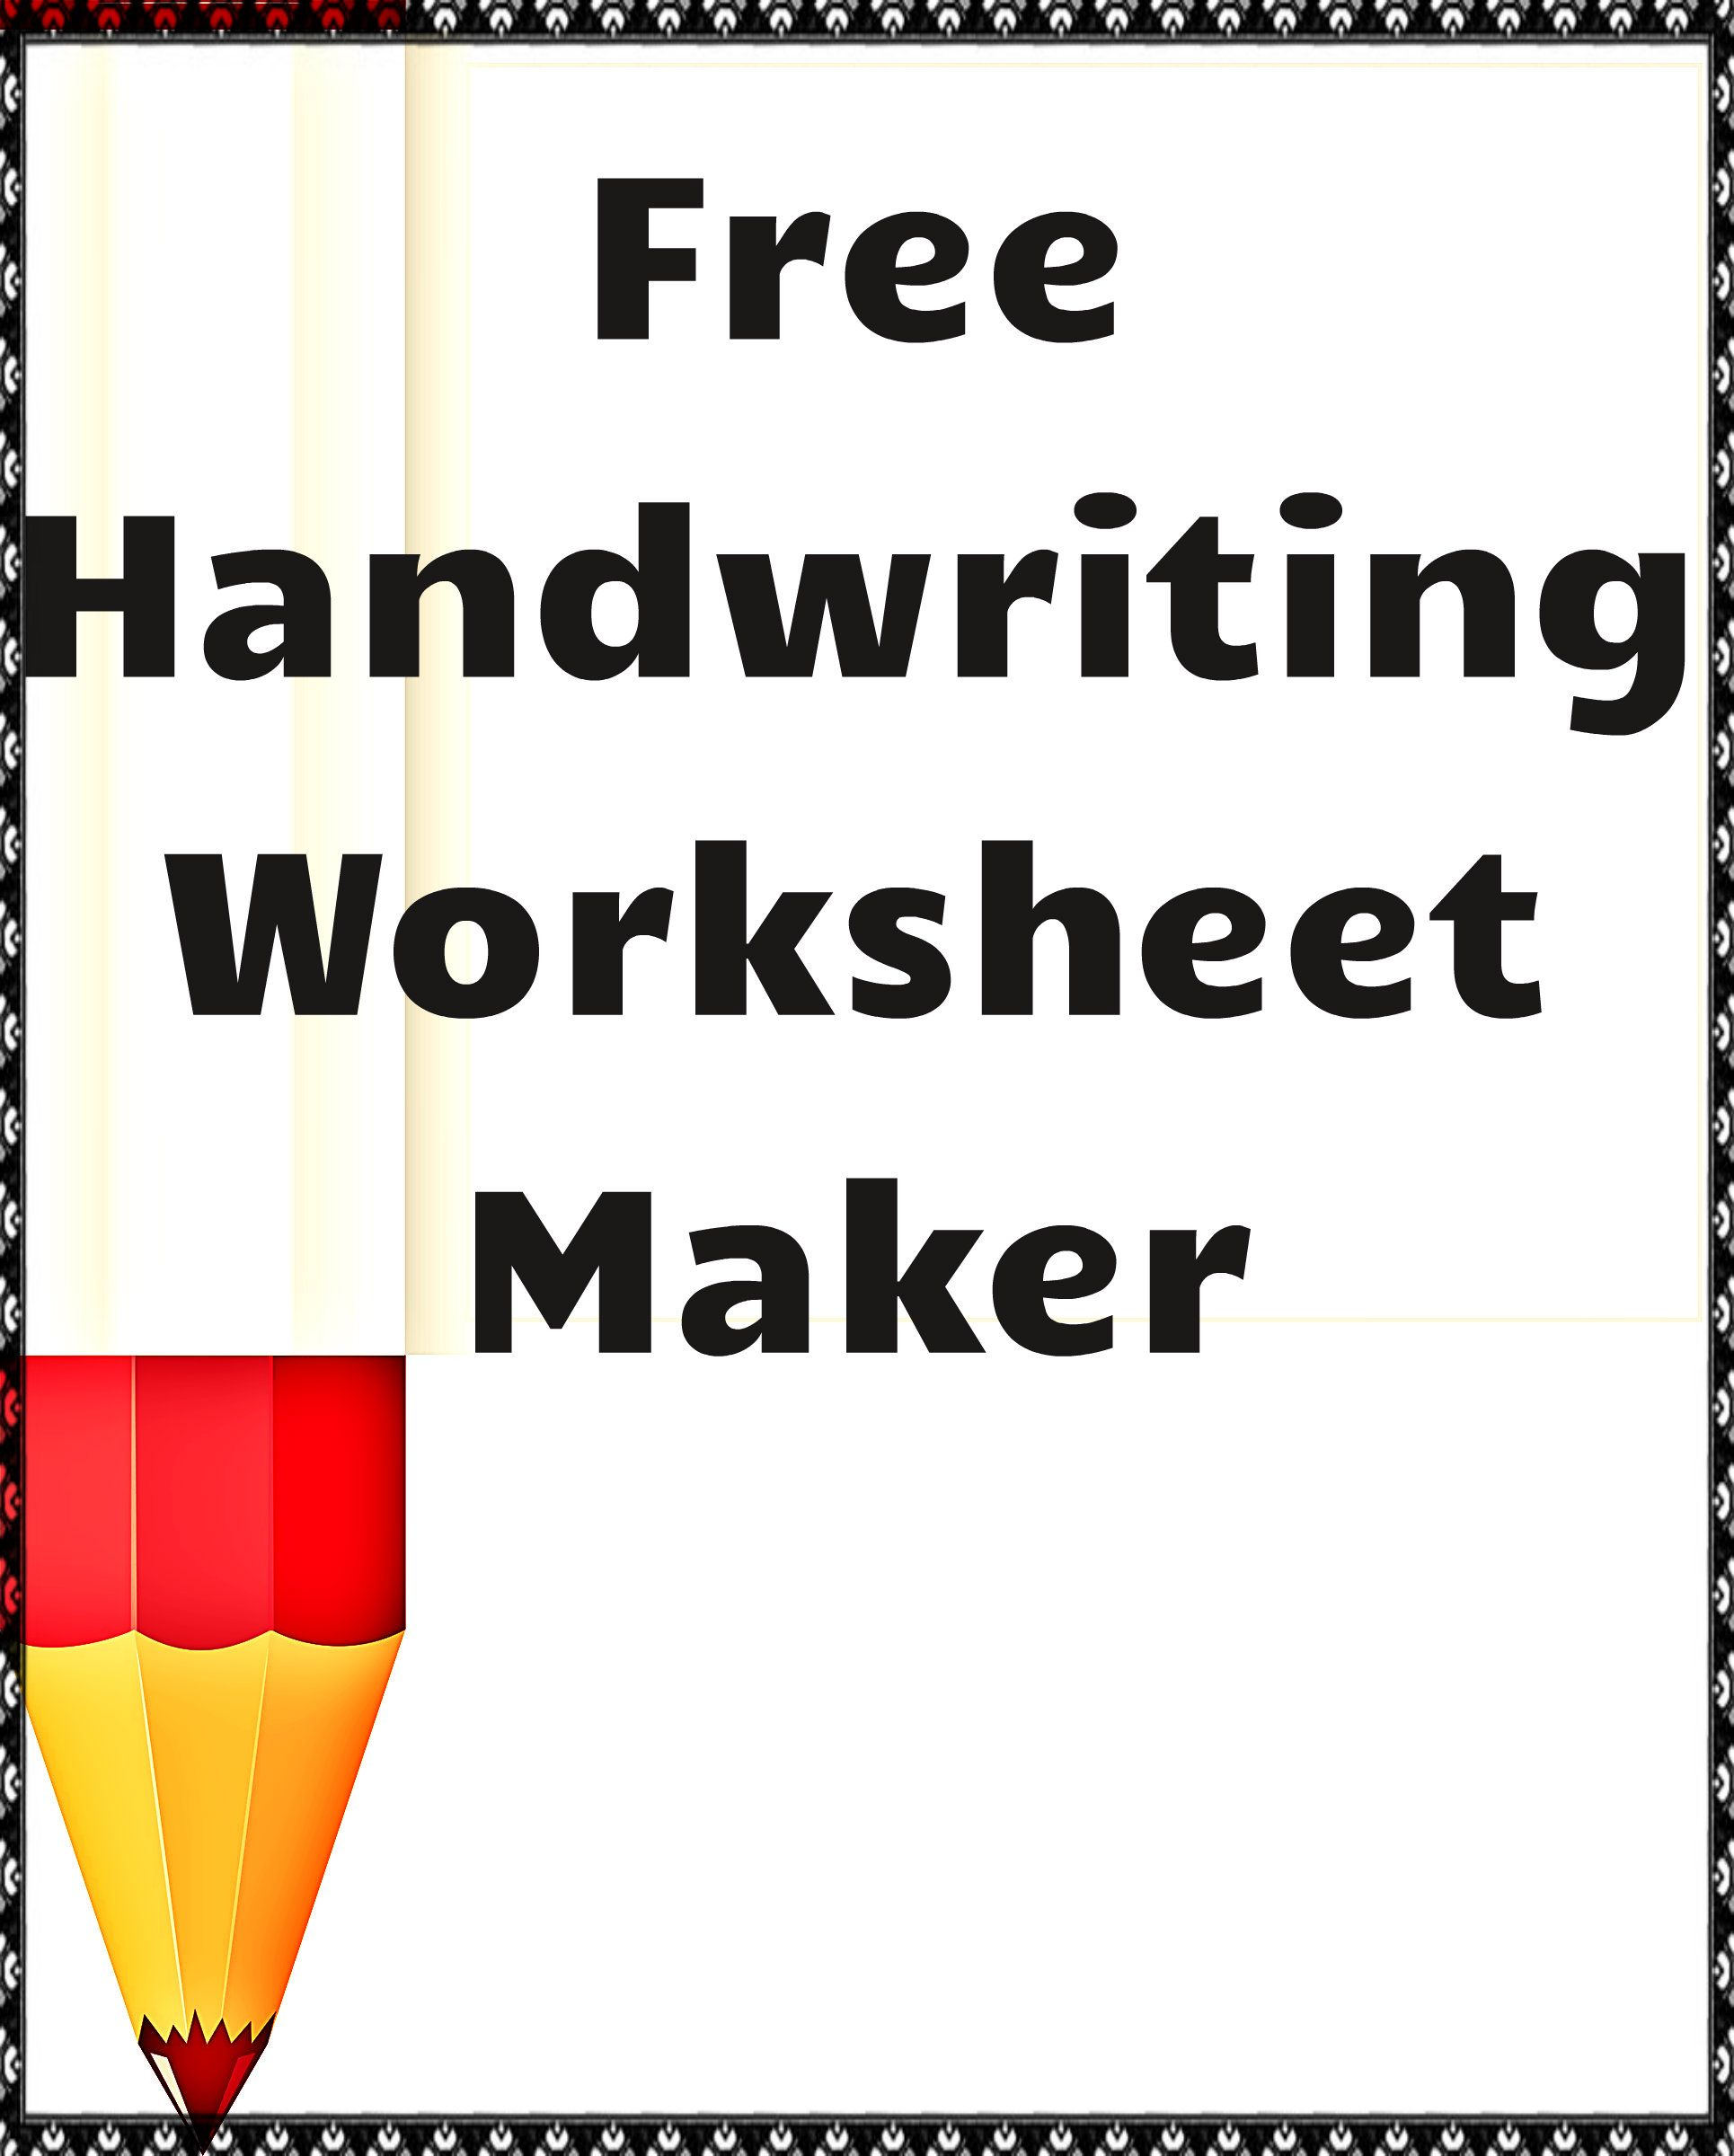 Worksheets Vocabulary Worksheet Maker free handwriting worksheet maker kindergartenklub com pinterest maker